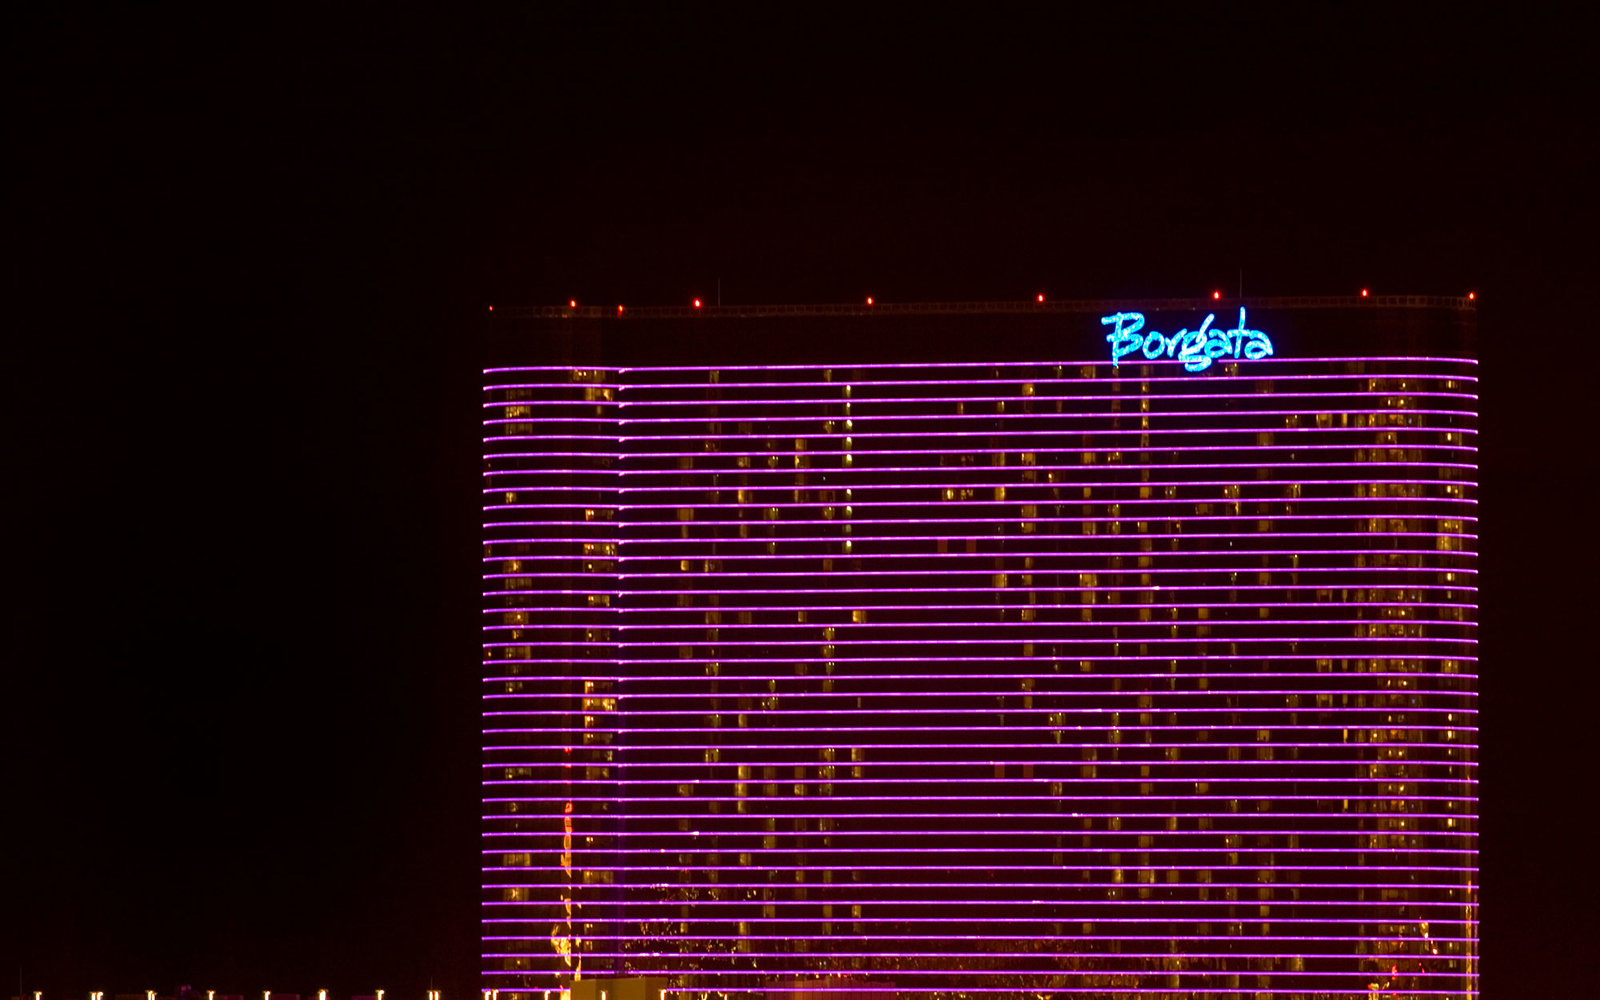 New Jersey: Borgata Hotel Casino & Spa